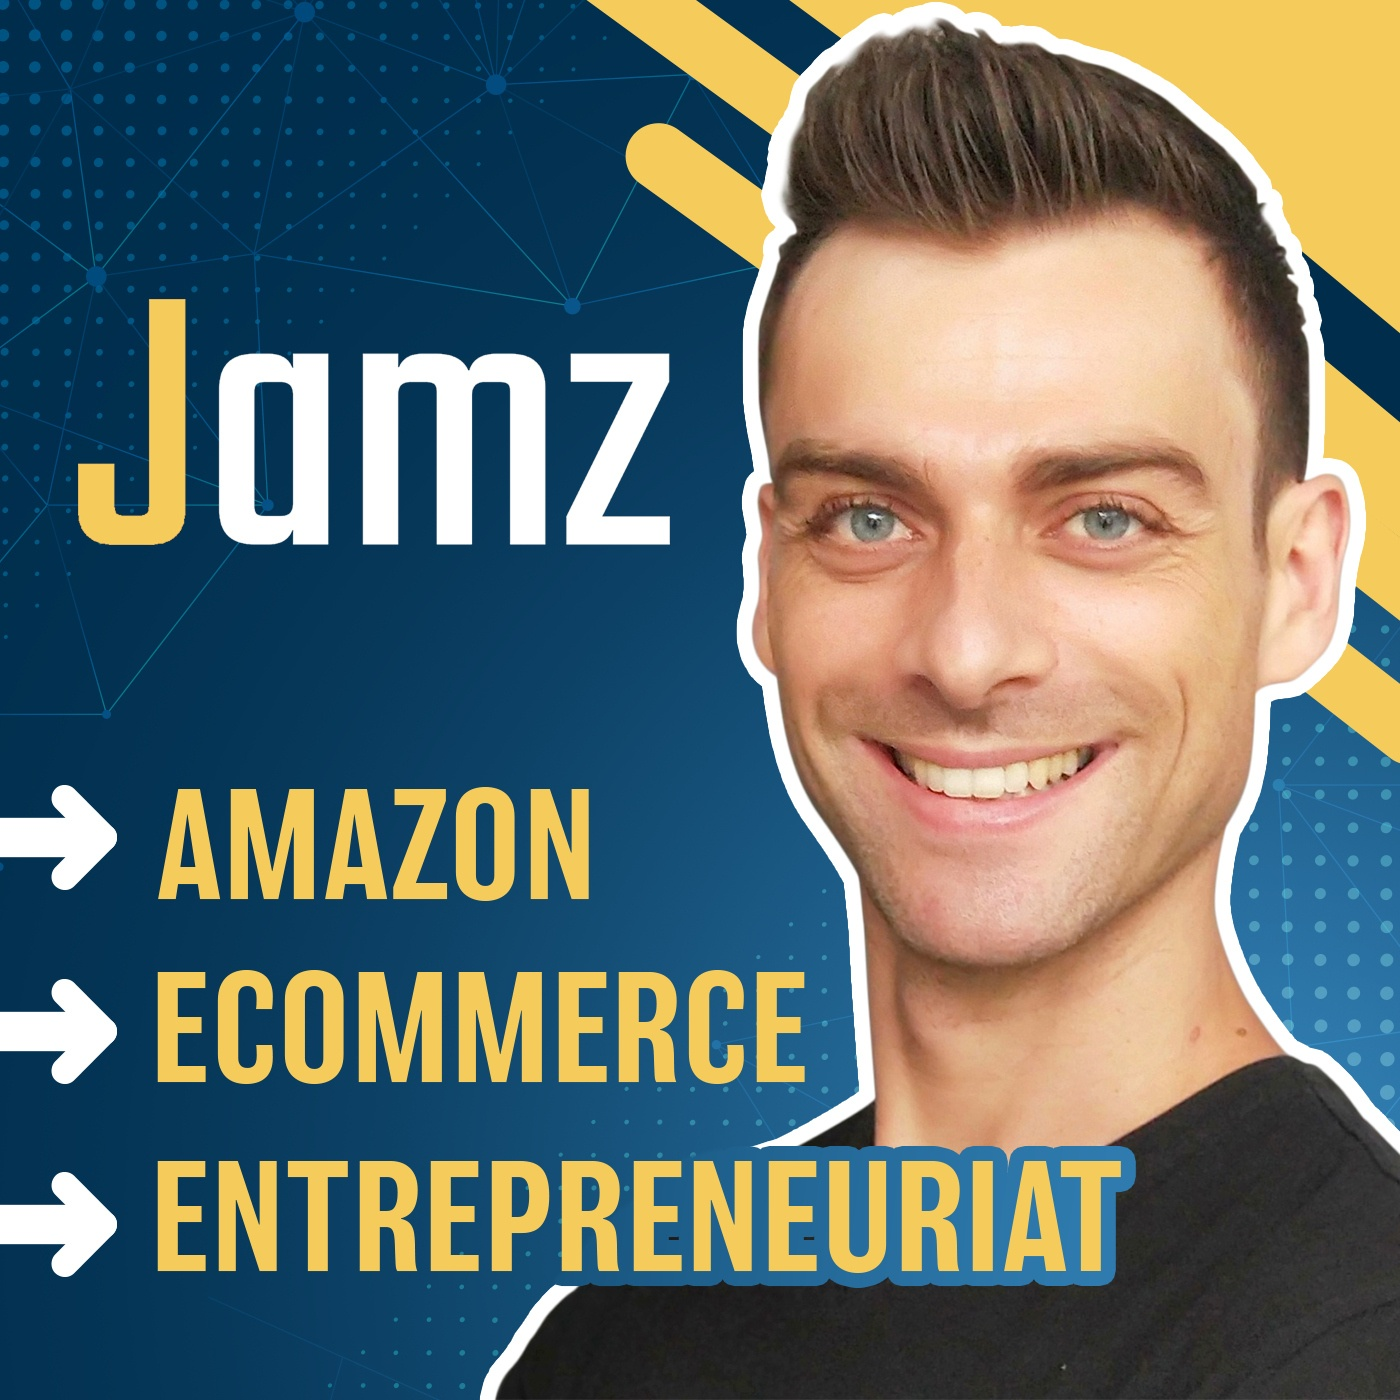 Jamz - Amazon, Ecommerce & Entrepreneuriat